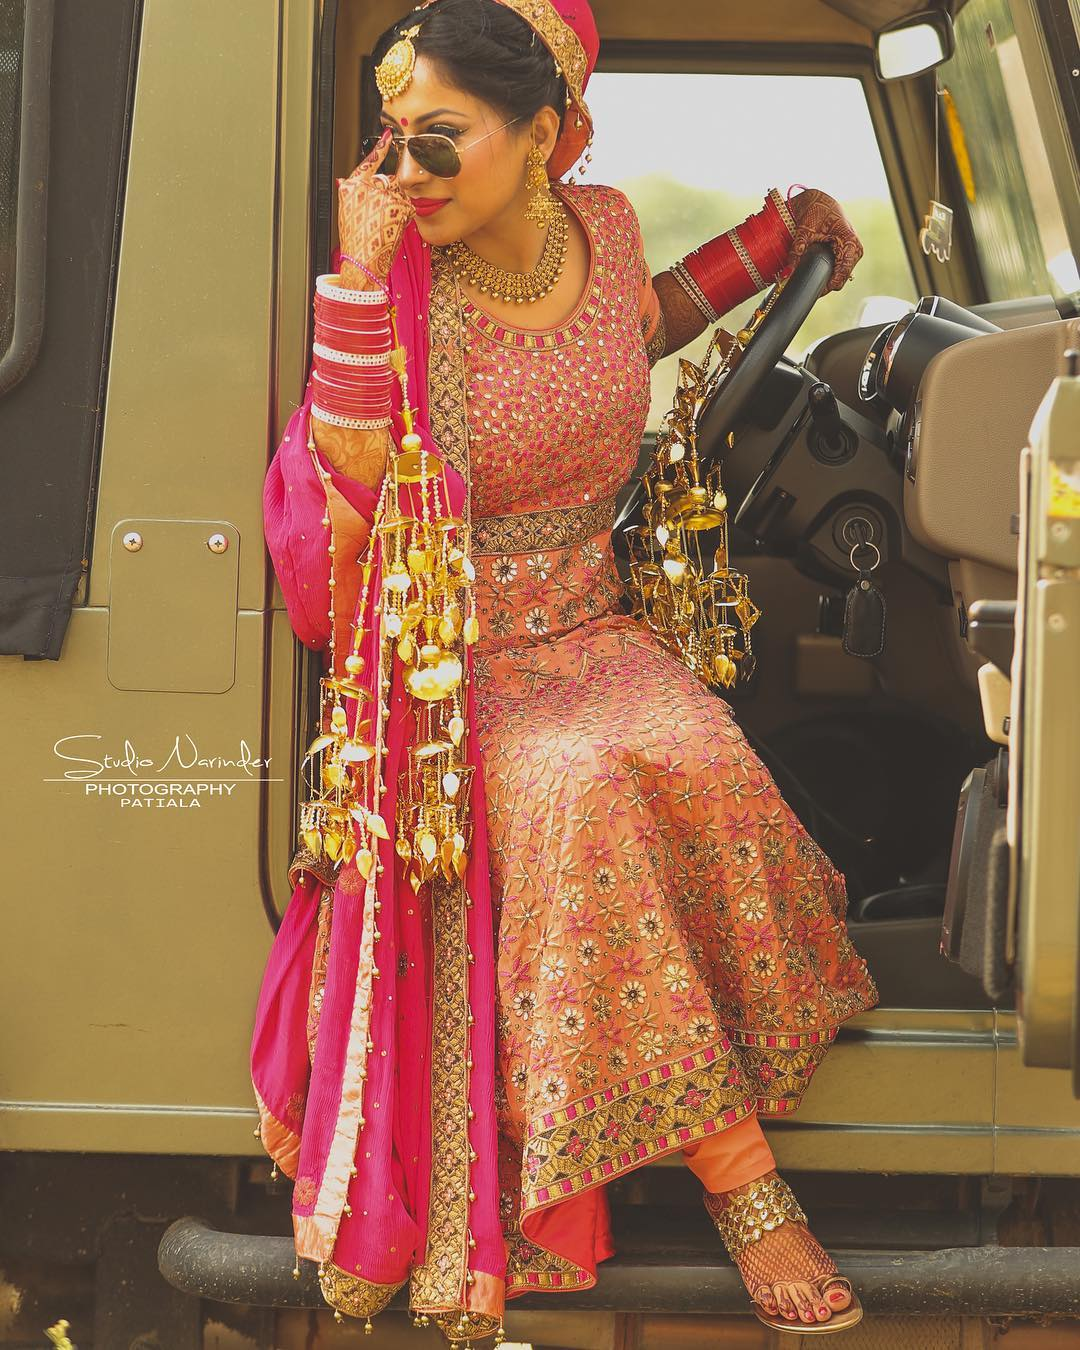 Entry of bride in Indian wedding - driving a jeep